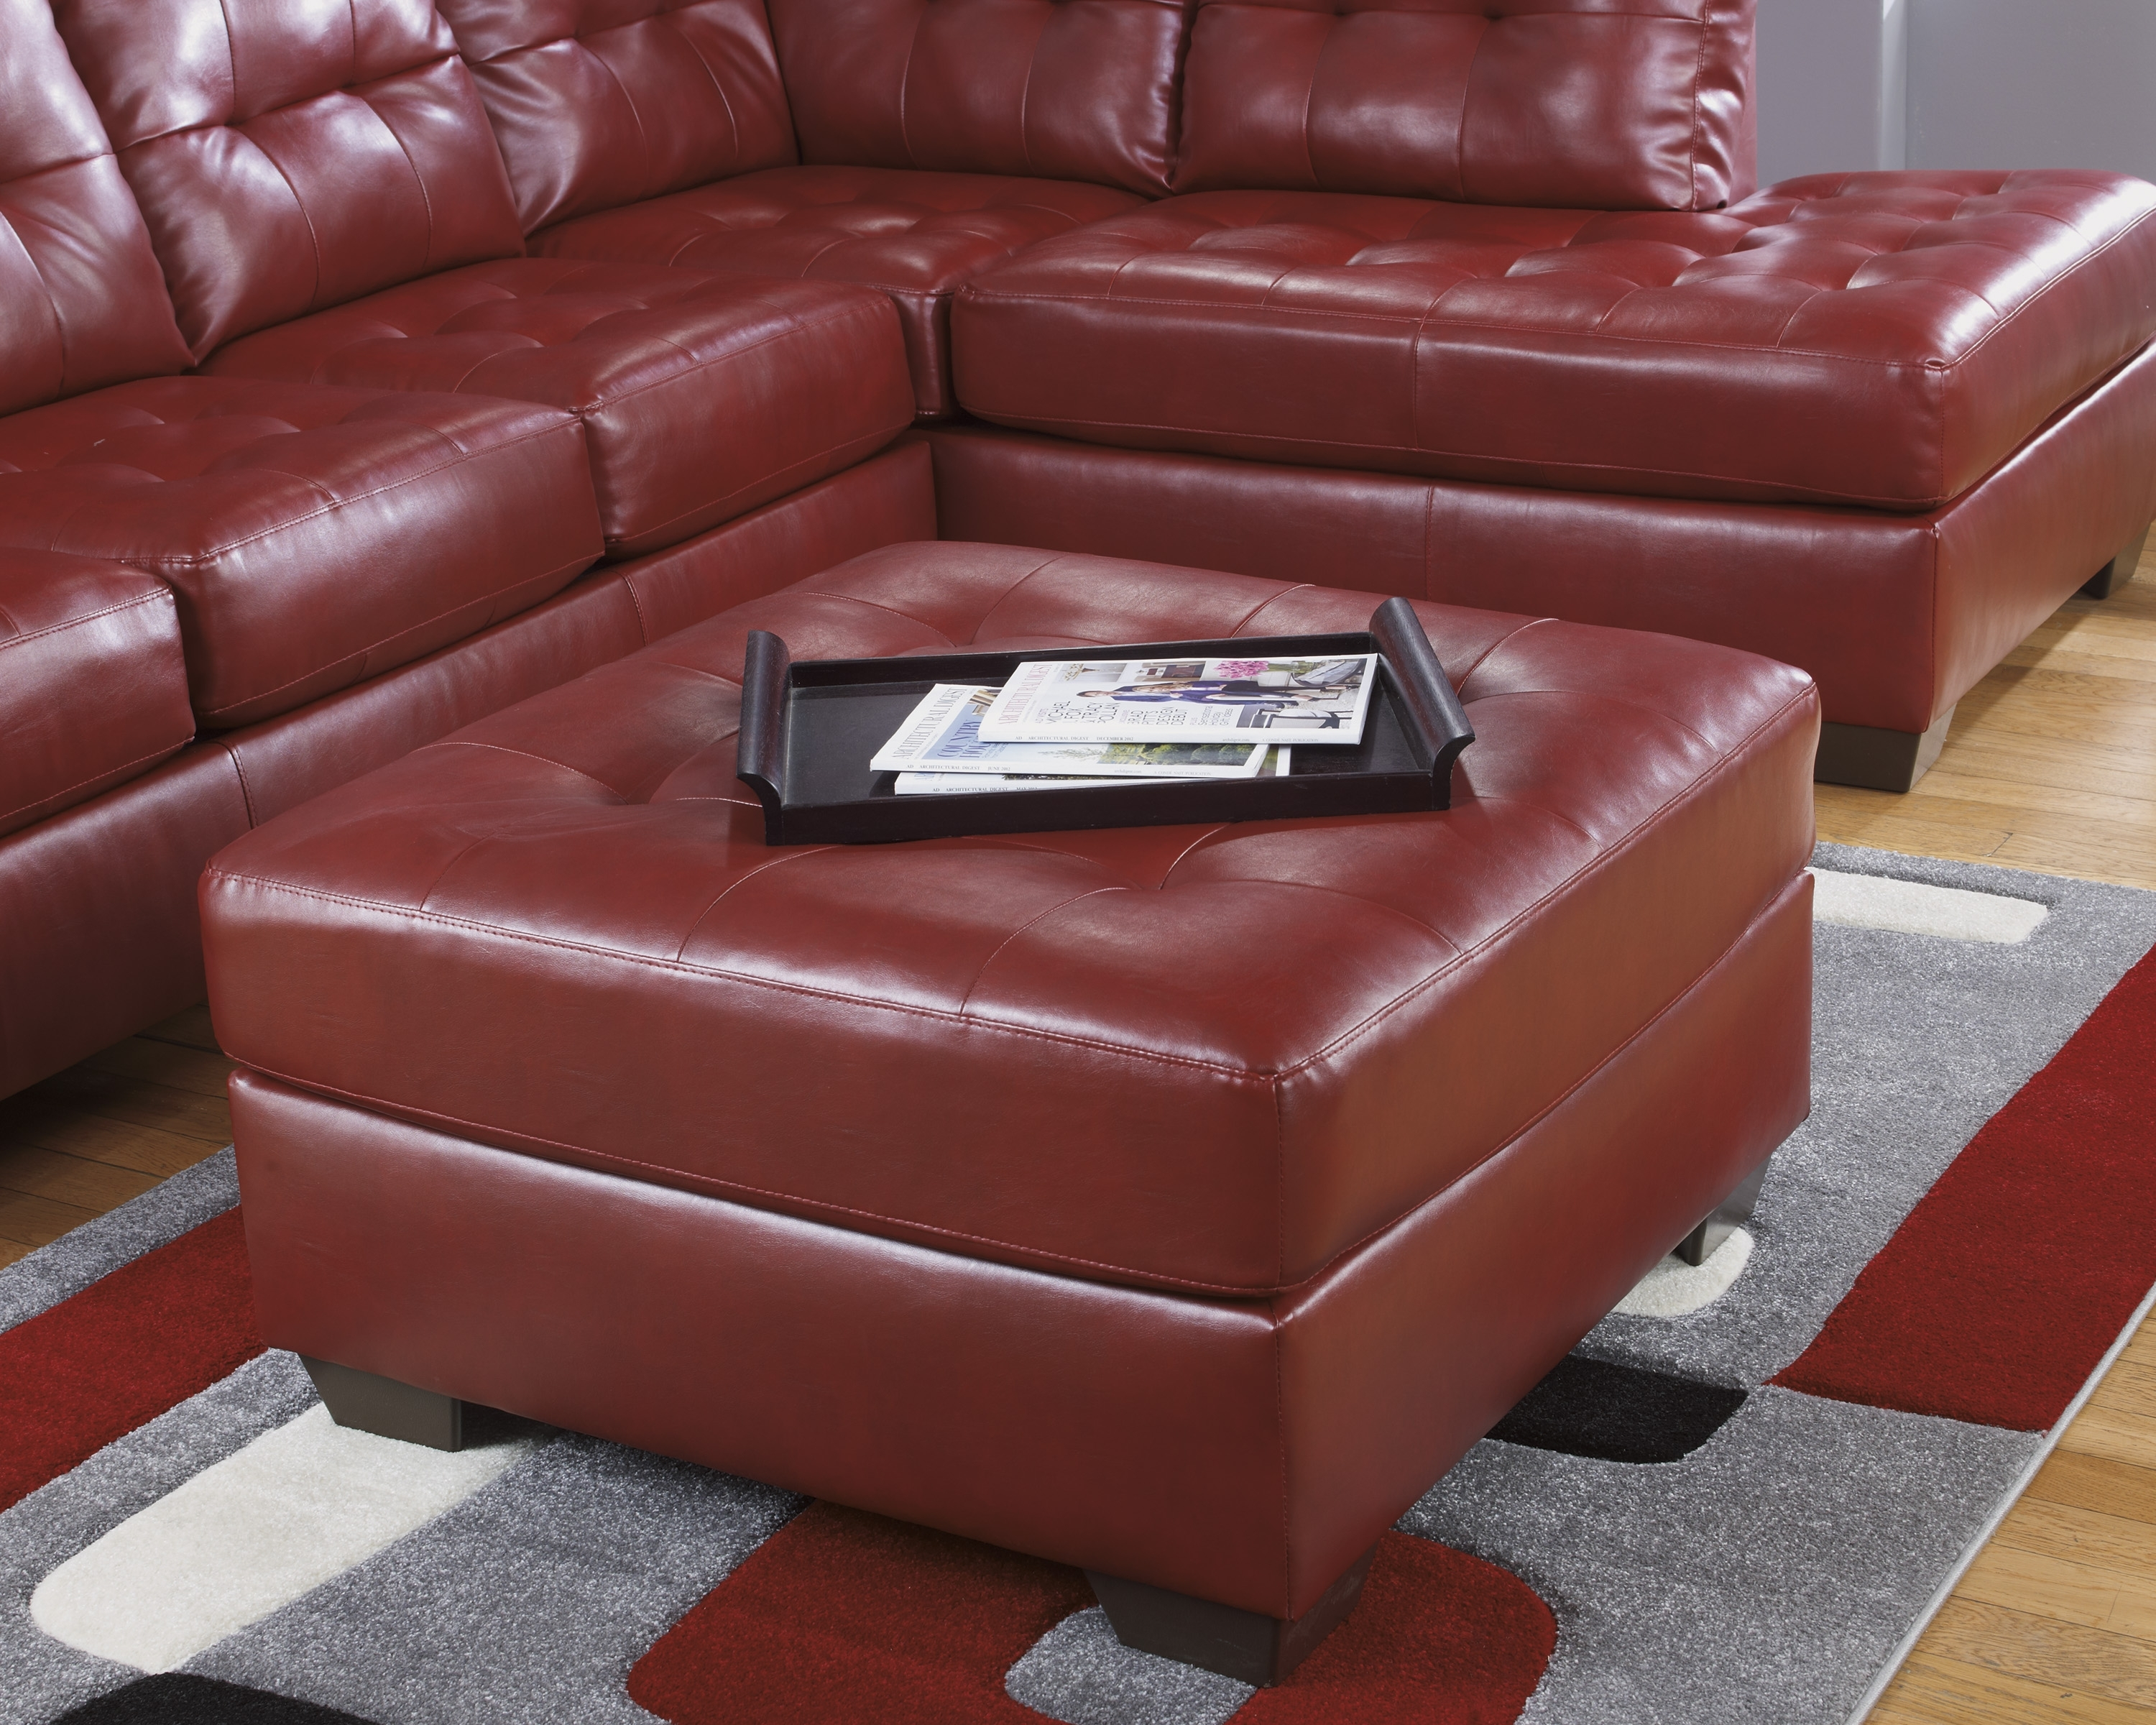 Ashley Furniture Leather Sectionals, Ashley Furniture Sofa Sleepers With Regard To Red Leather Sectional Sofas With Ottoman (View 3 of 10)